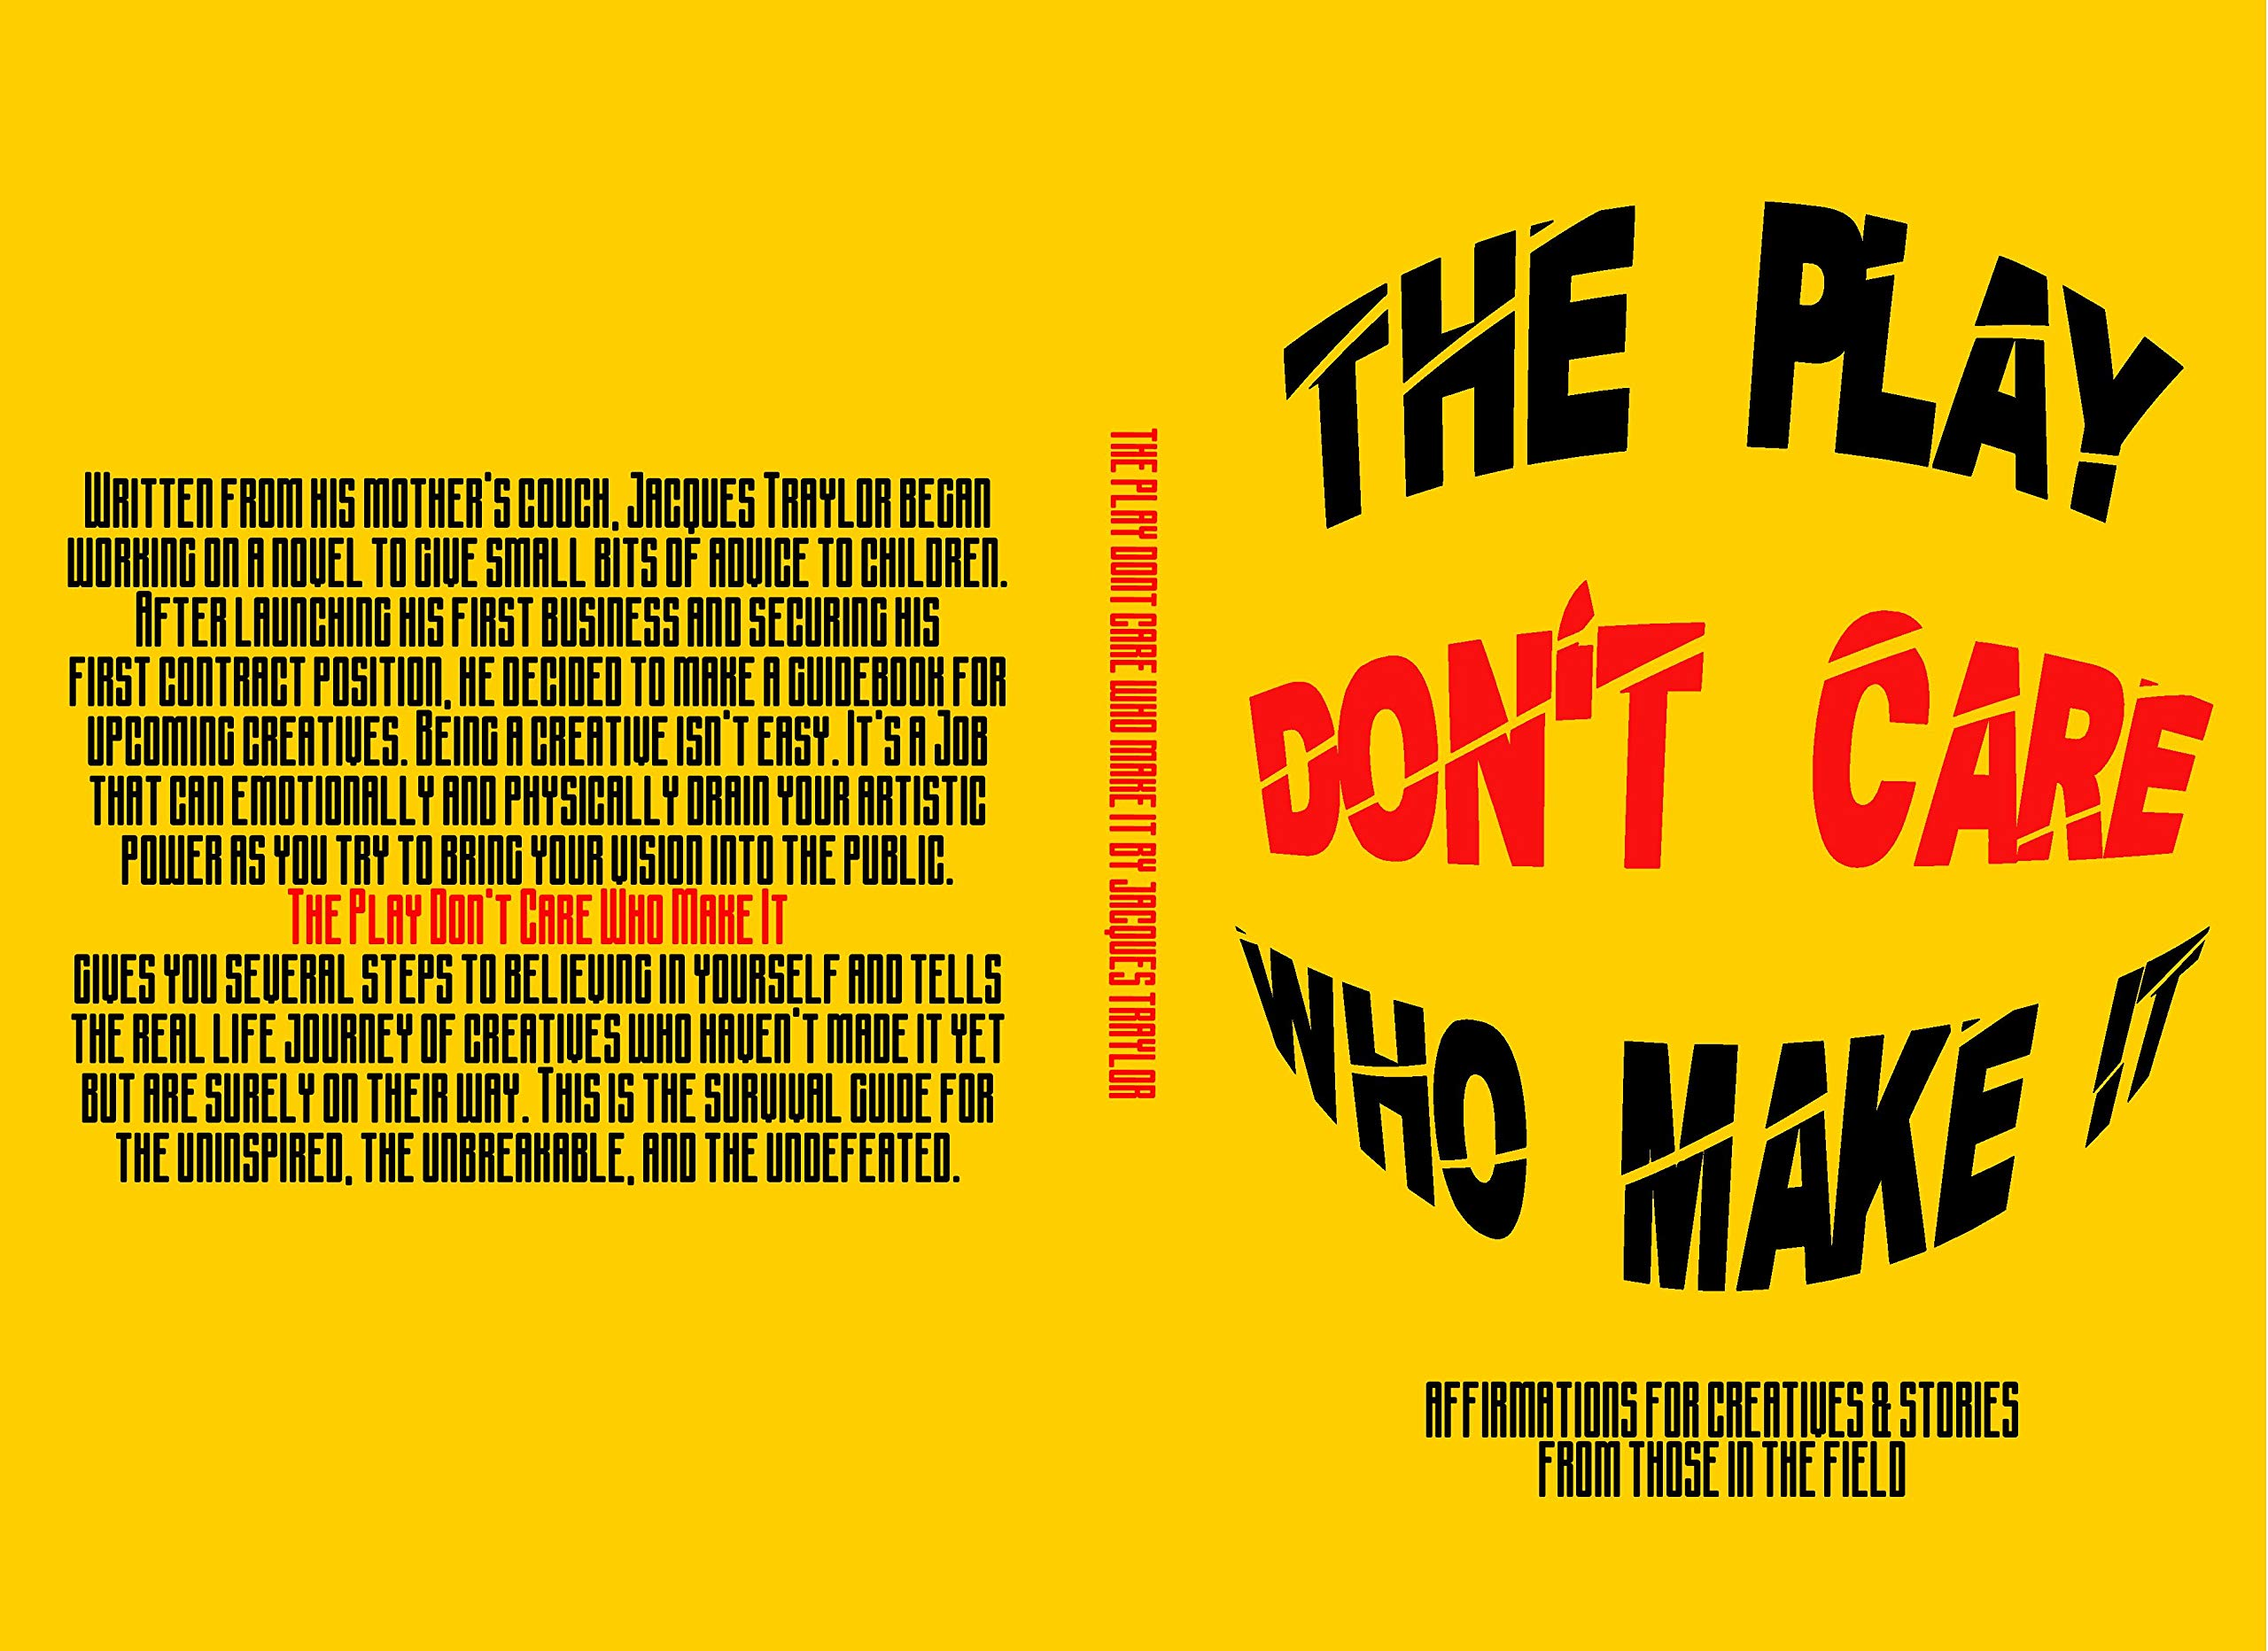 The Play Don't Care Who Make It: Affirmations For Creatives And Stories From Those In The Field.